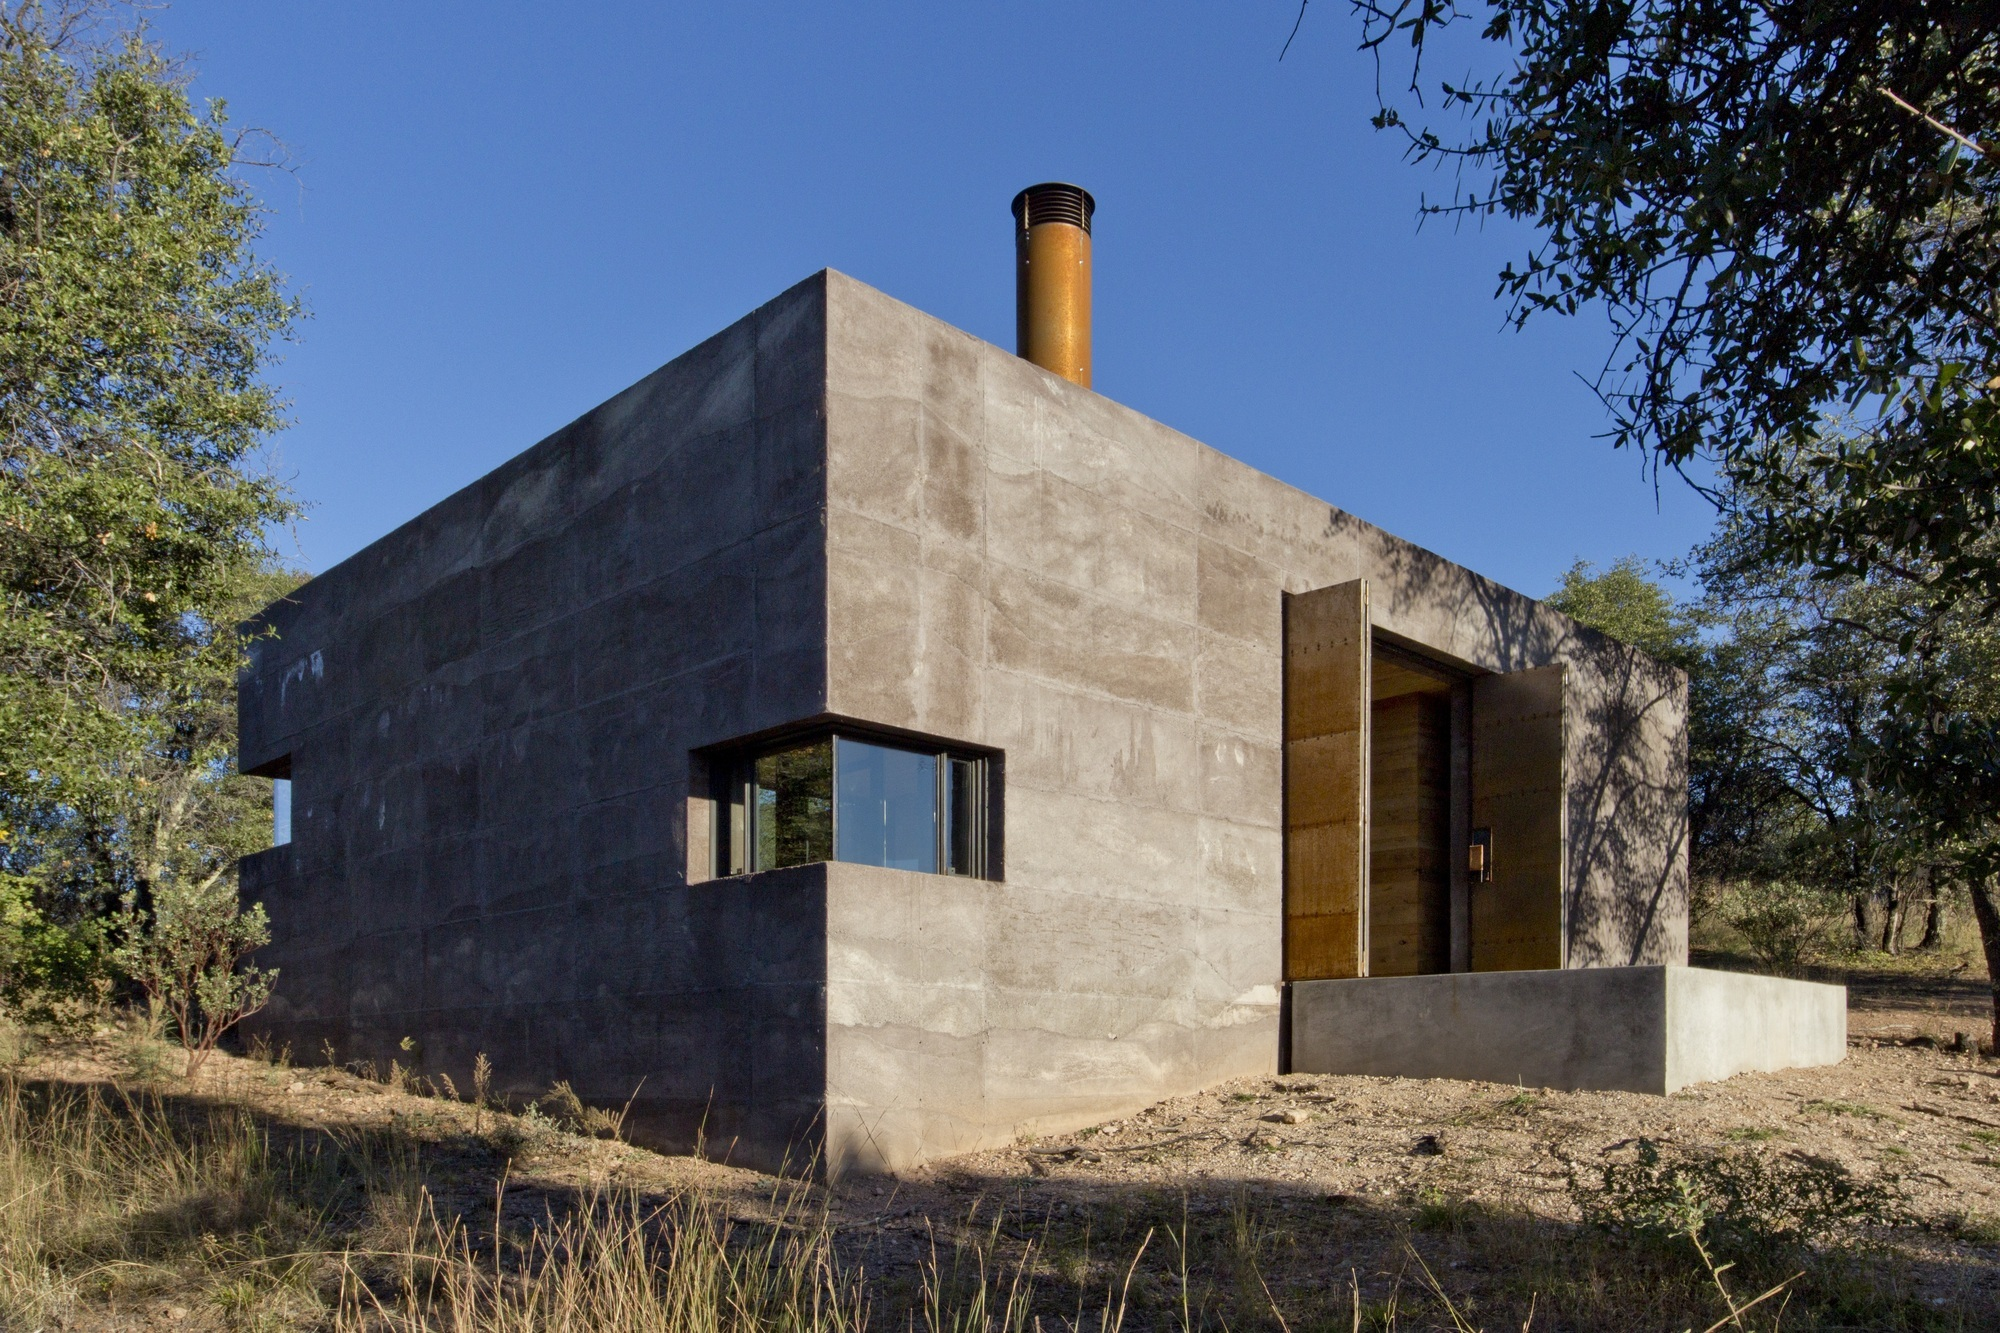 Experience Casa Caldera in this Breathtaking Video Narrated by the Architects